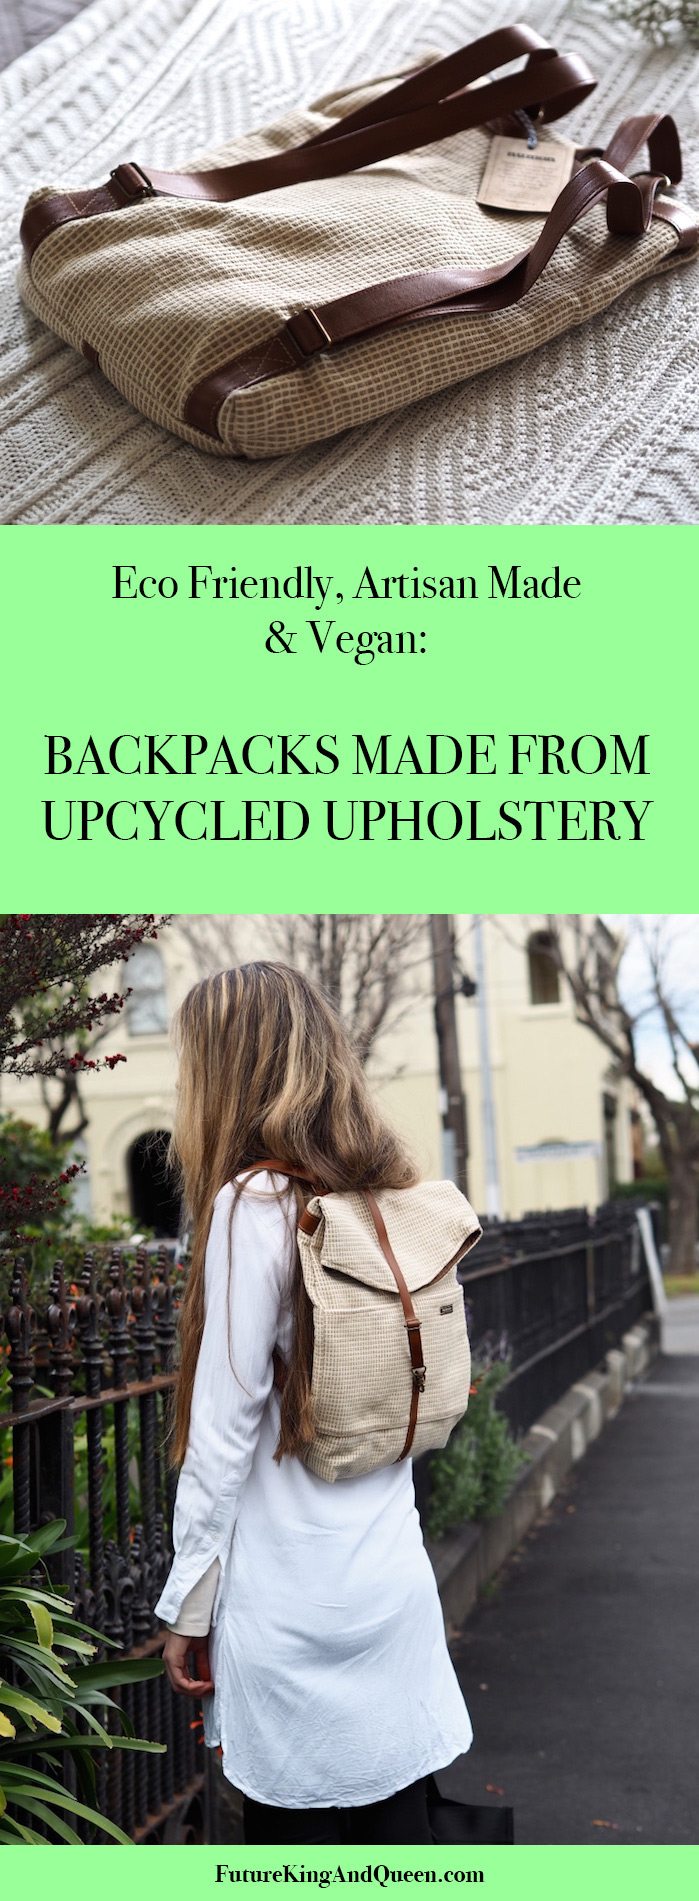 numon-upcycled-ecofriendly-vegan-artisan-made-backpack-futurekingandqueen.jpg